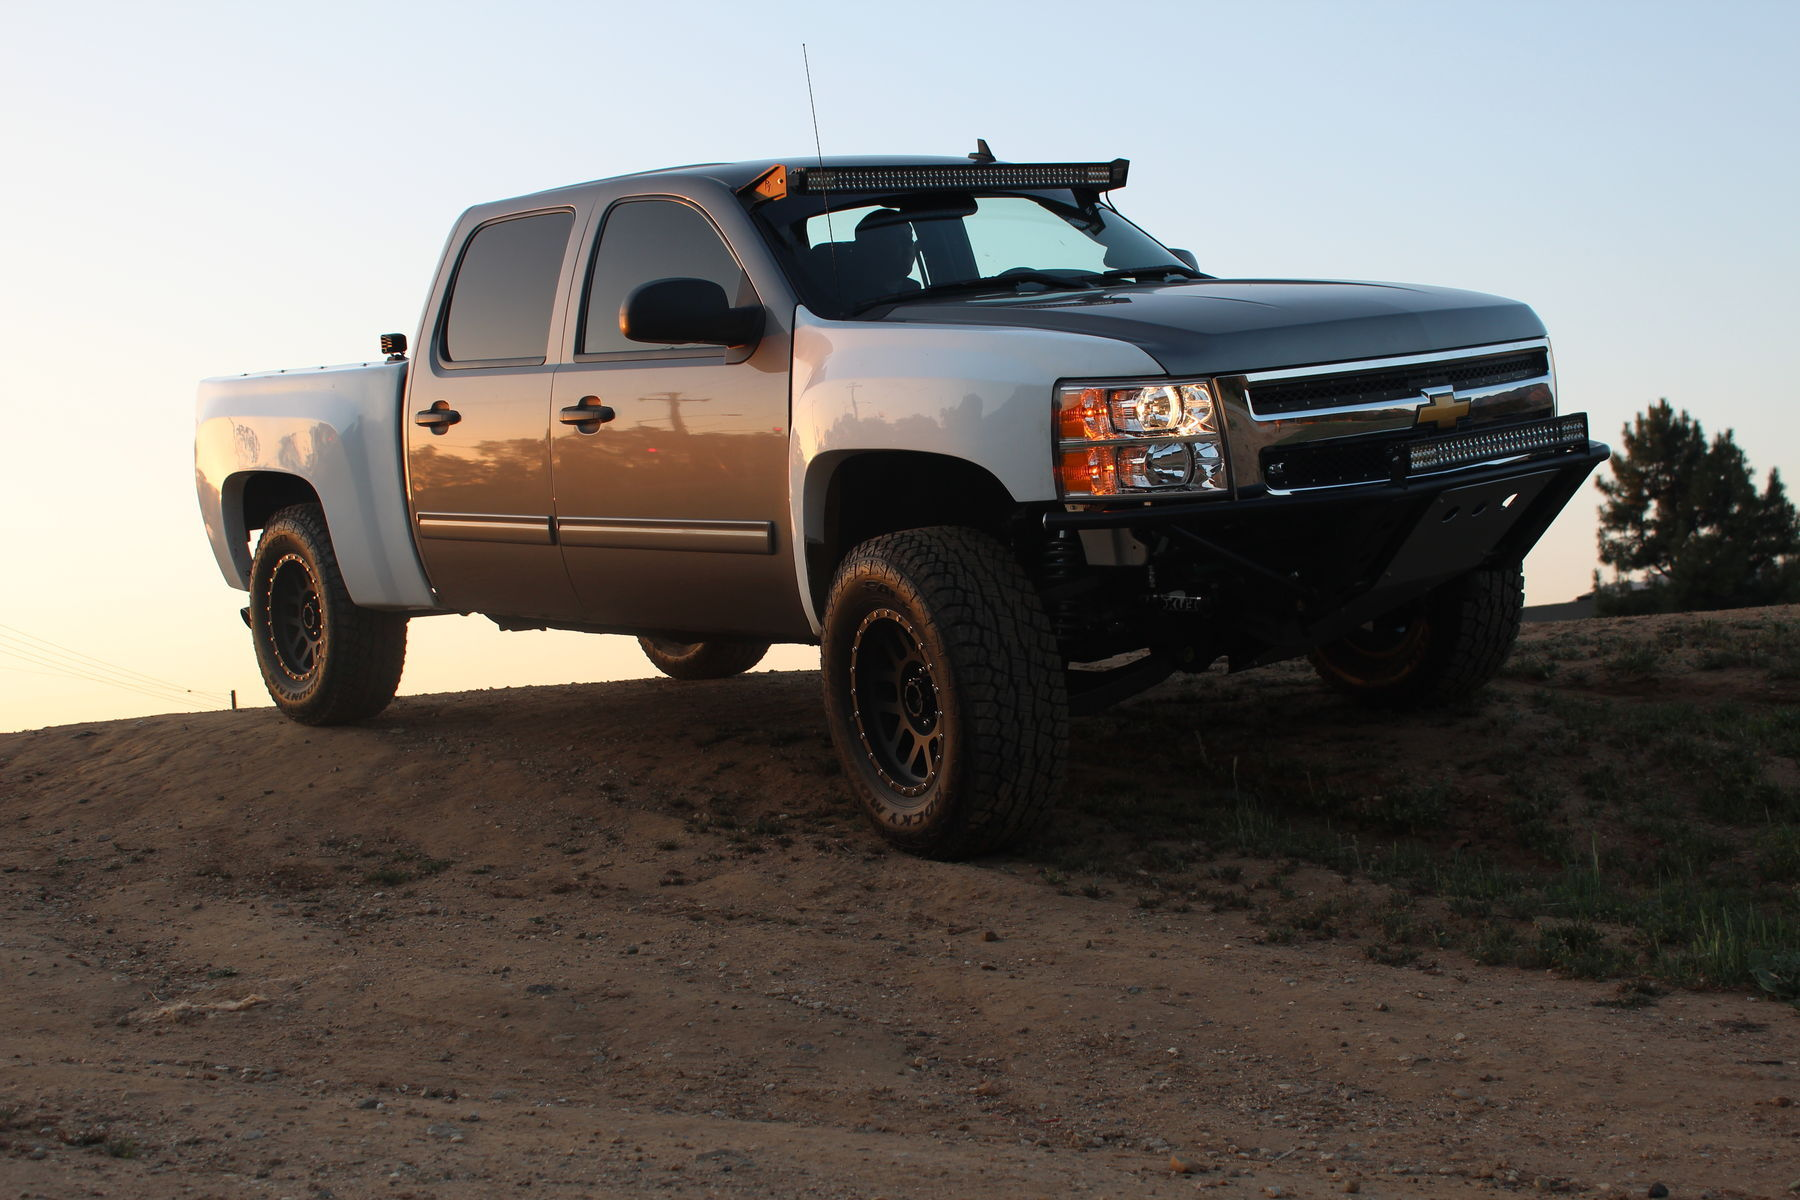 2012 Chevrolet C/K 1500 Series | Chevy Silverado 1500 Off-Road Build